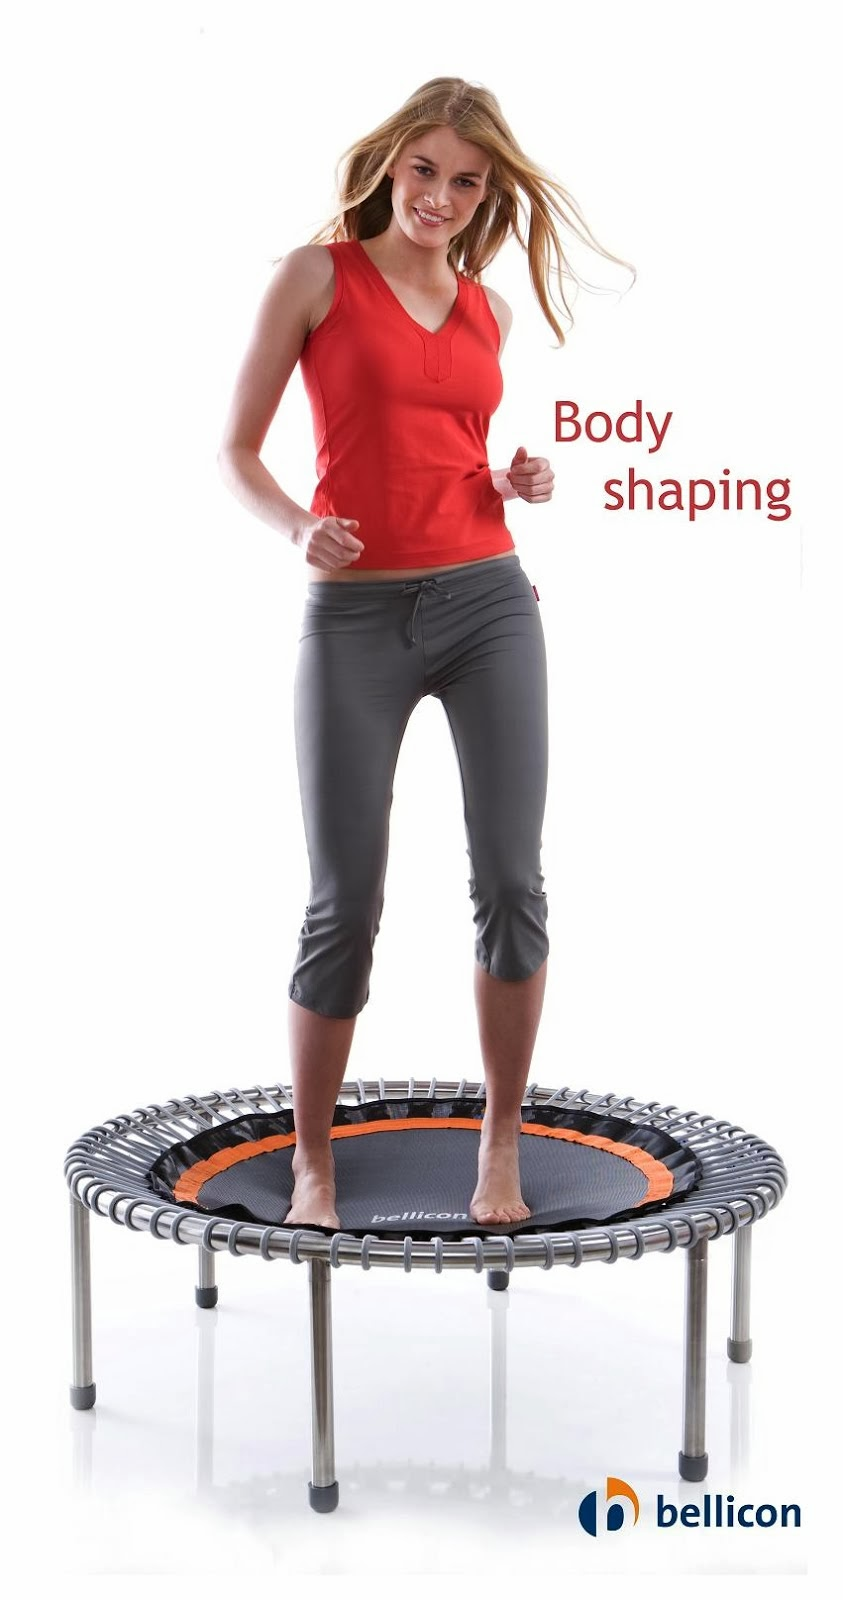 HEALTH BENEFITS OF REBOUNDING FOR HEART HEALTH